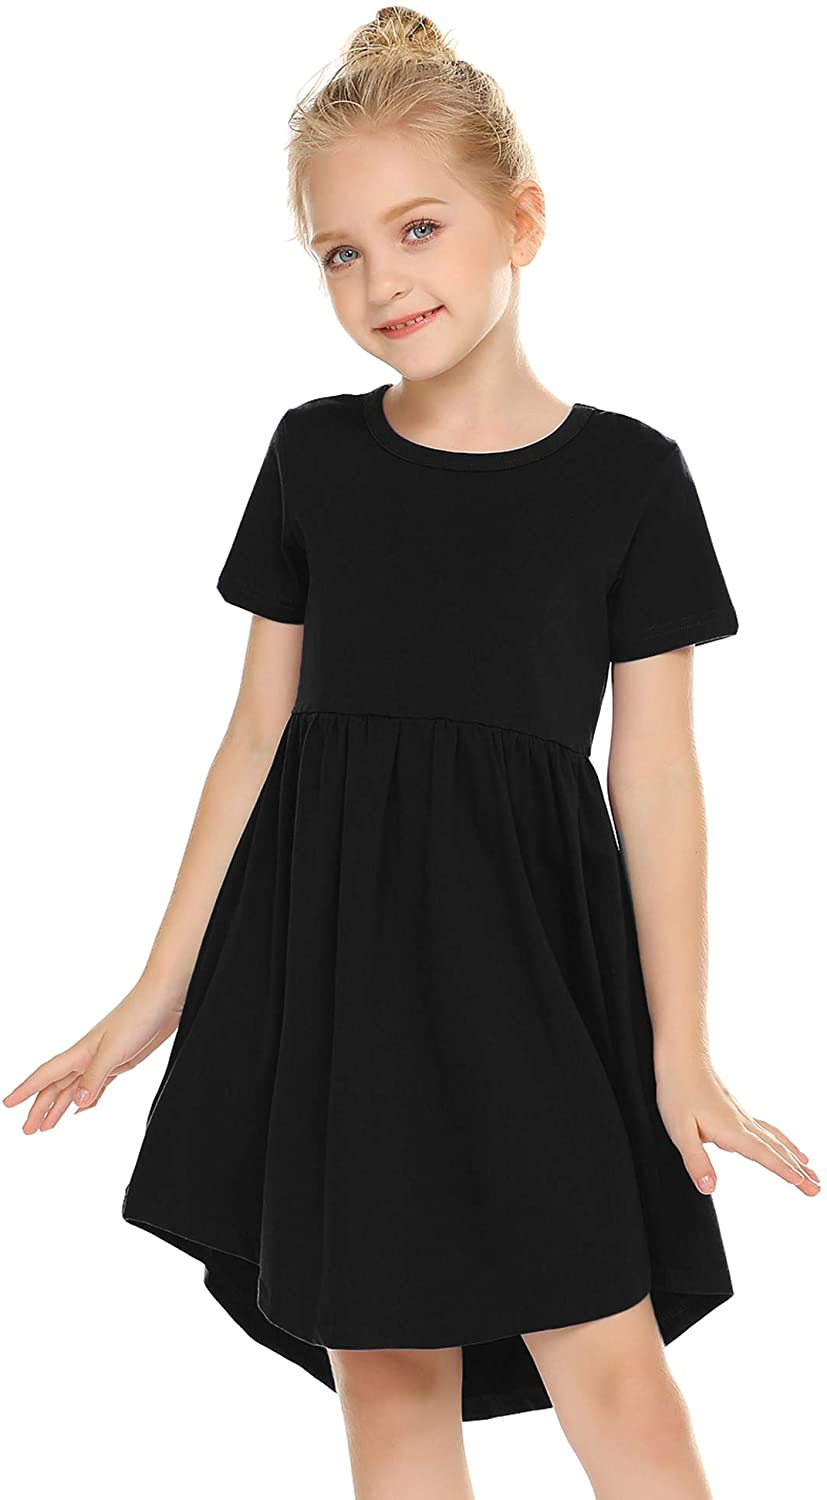 Arshiner Girl Cotton Short Sleeve A Line Skater Casual Twirly Casual Dress